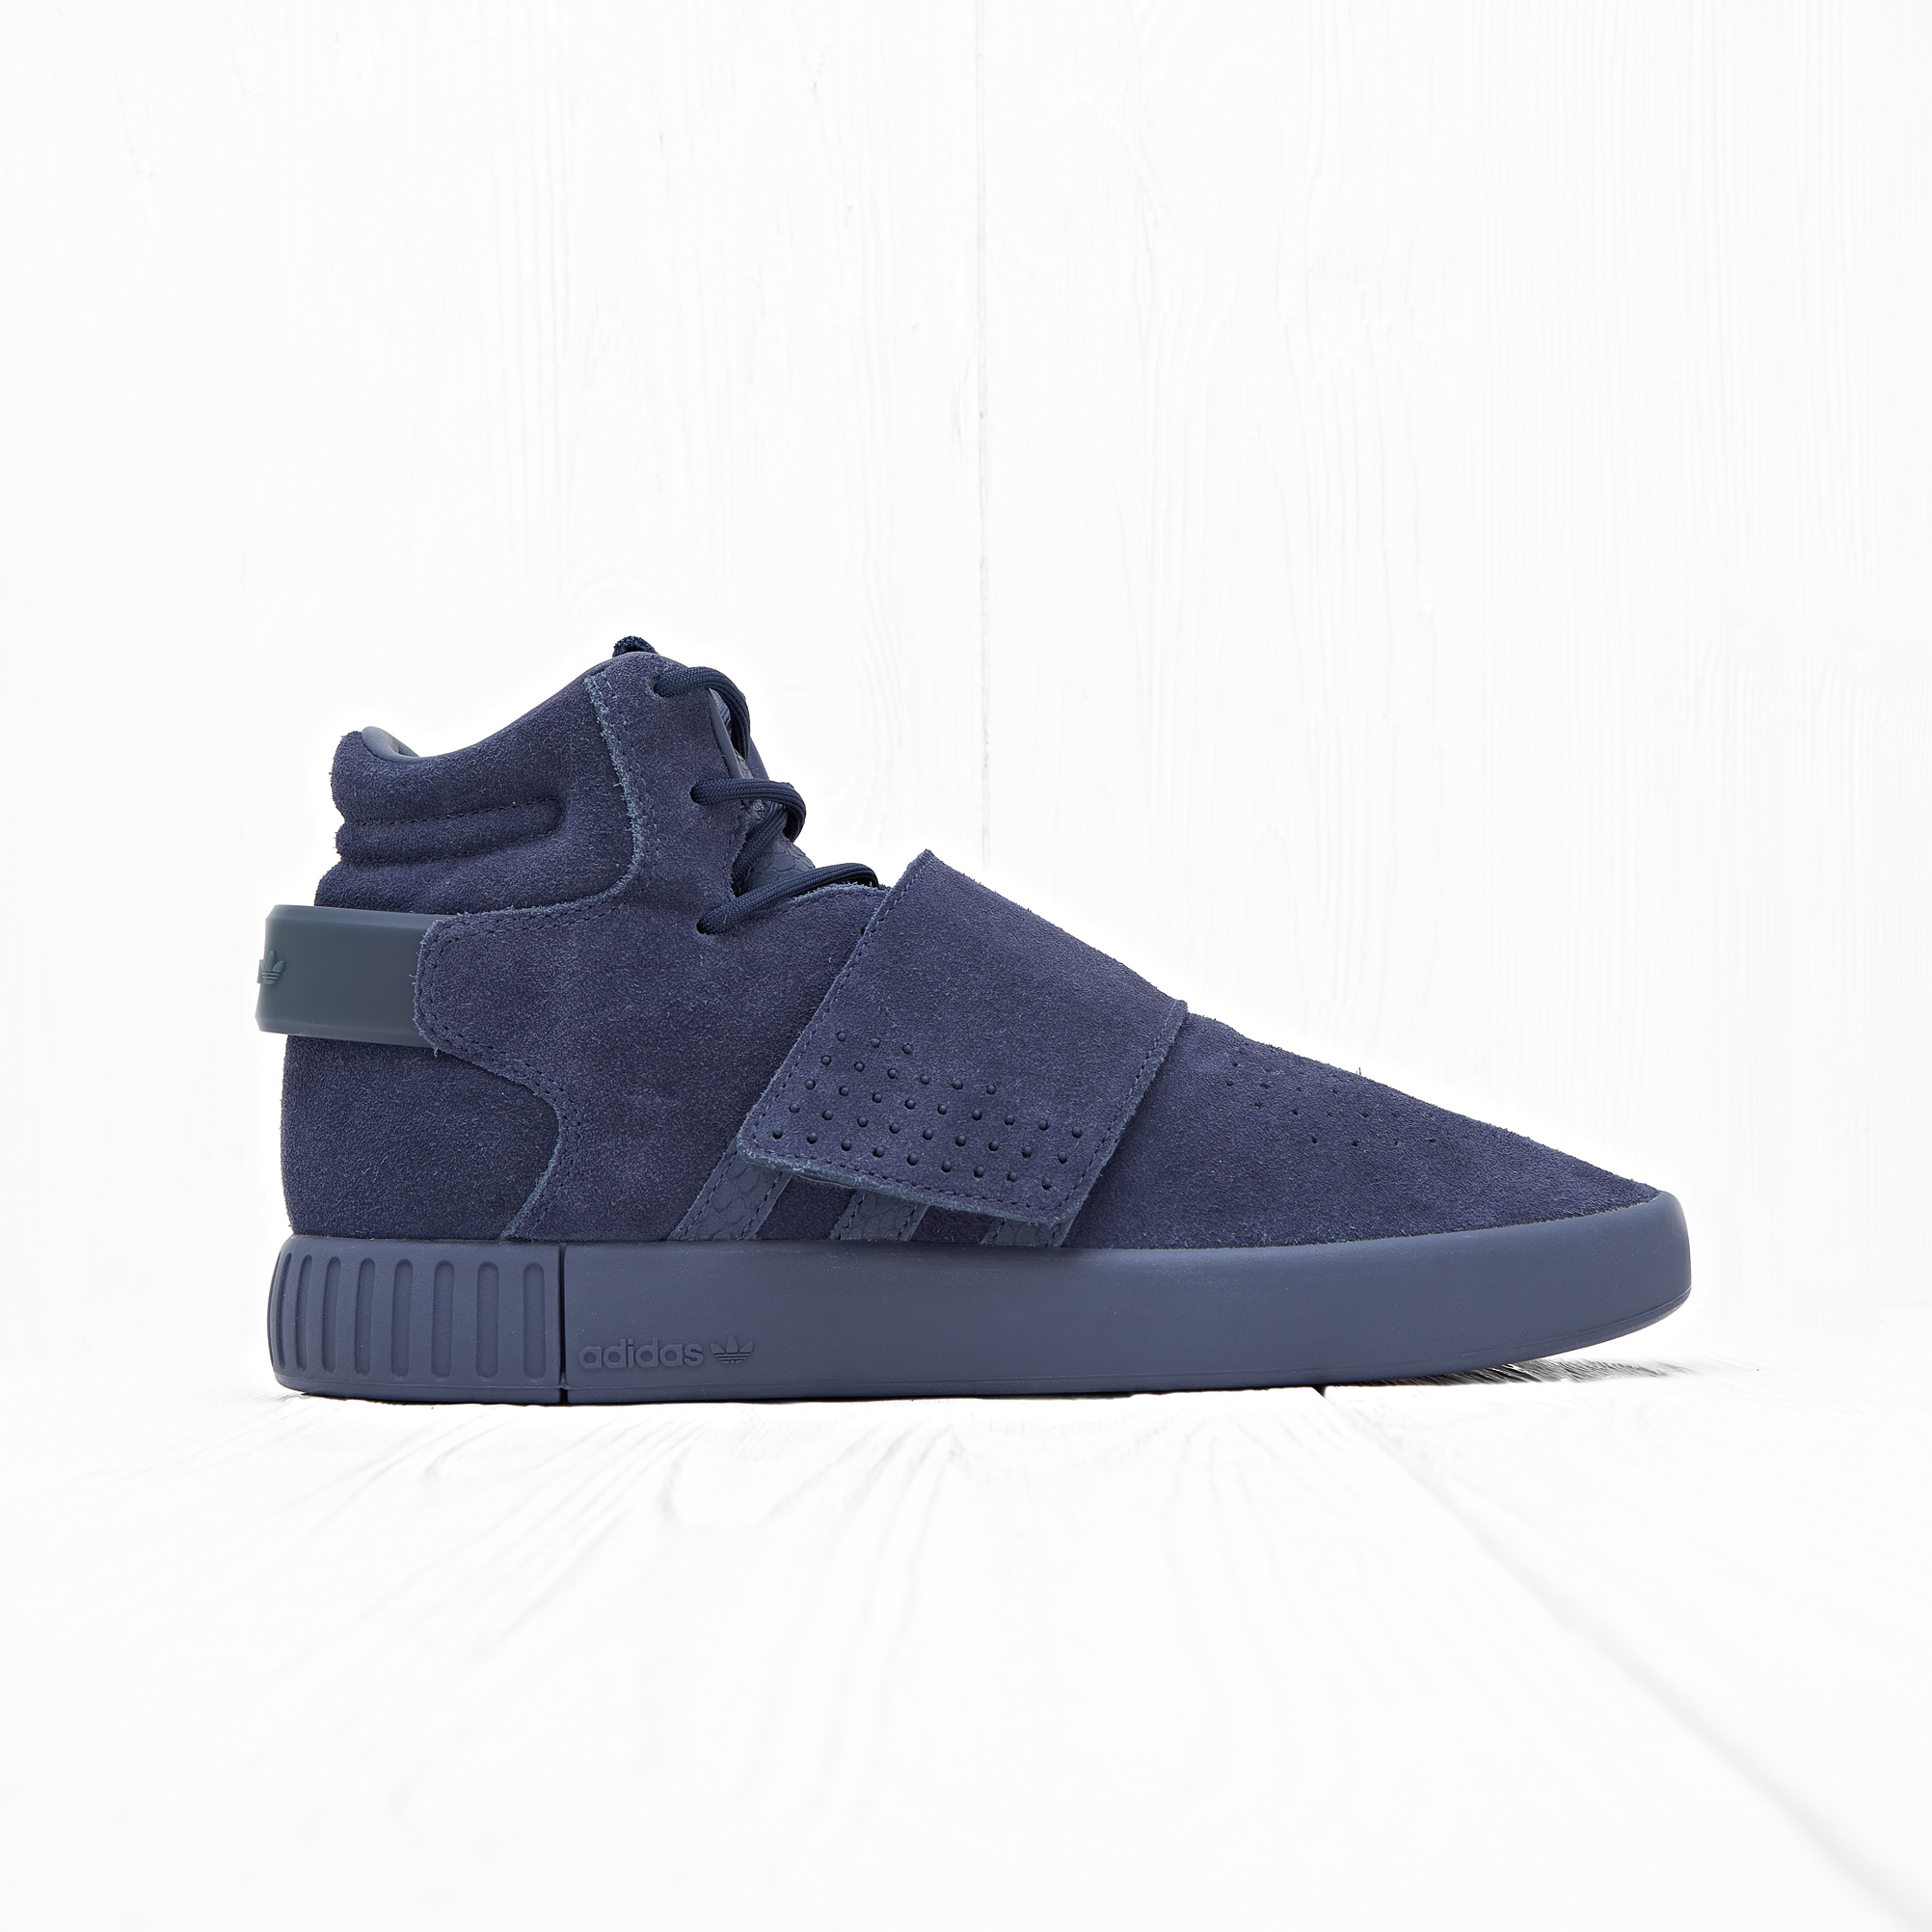 Кроссовки Adidas TUBULAR INVADER STRAP Trace Blue/Trace Blue/Footwear White